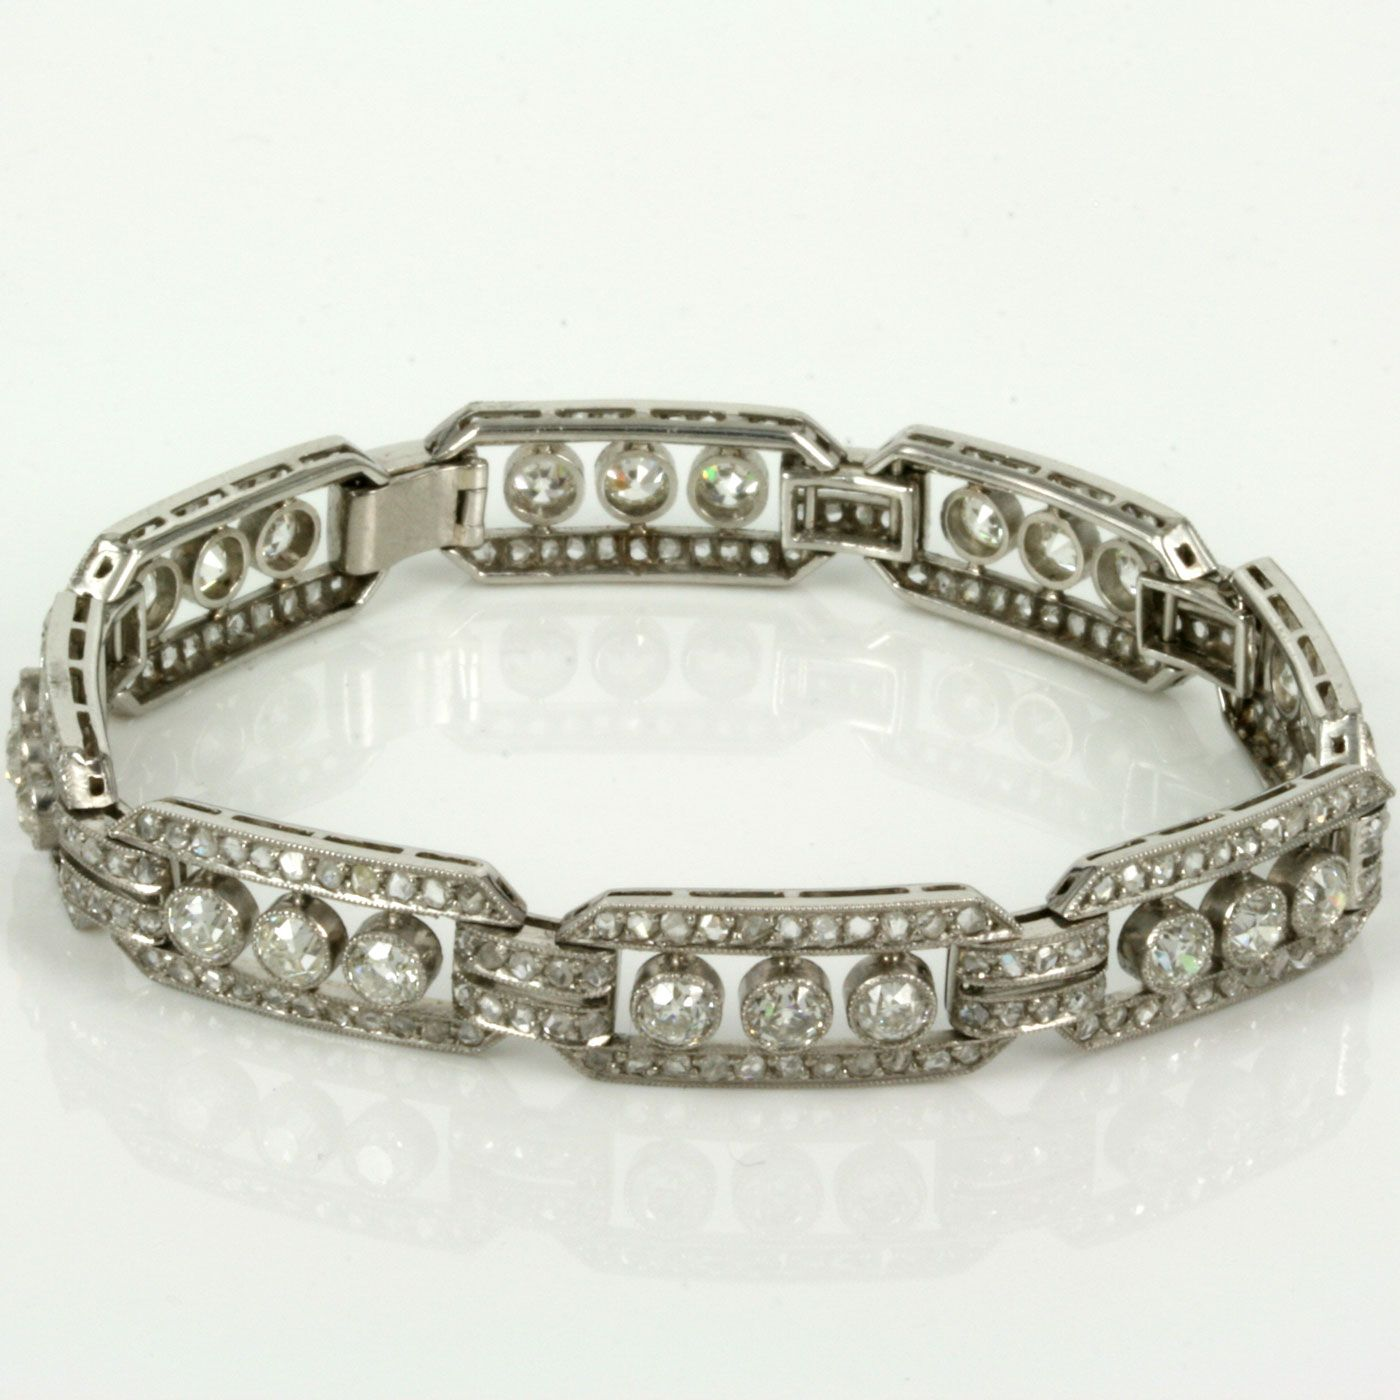 Here is a truly magnificent diamond bracelet made in the Art Deco period of the 1920's that has been all hand made in platinum and set with an incredible 104 diamonds in the most elegant and sophisticated design. Jewellers of the 1920's really knew how to created masterpieces and this is one of those pieces. Measuring 17.4cm in length and 9.4mm wide, this Art Deco diamond bracelet sits so well on the wrist and thanks to all of those diamonds sparkles so brilliantly. There are a total ...